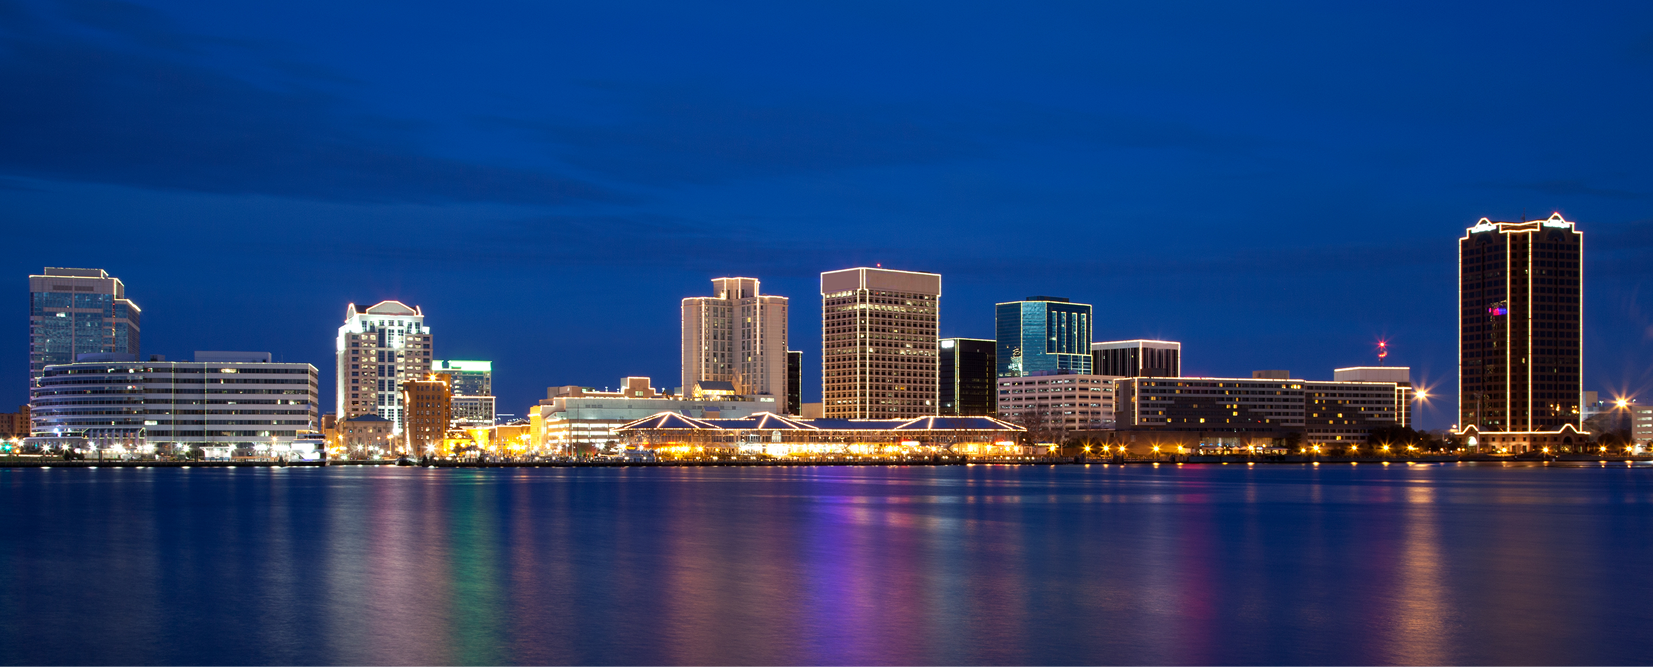 norfolk-va-waterfront-skyline-nighttime